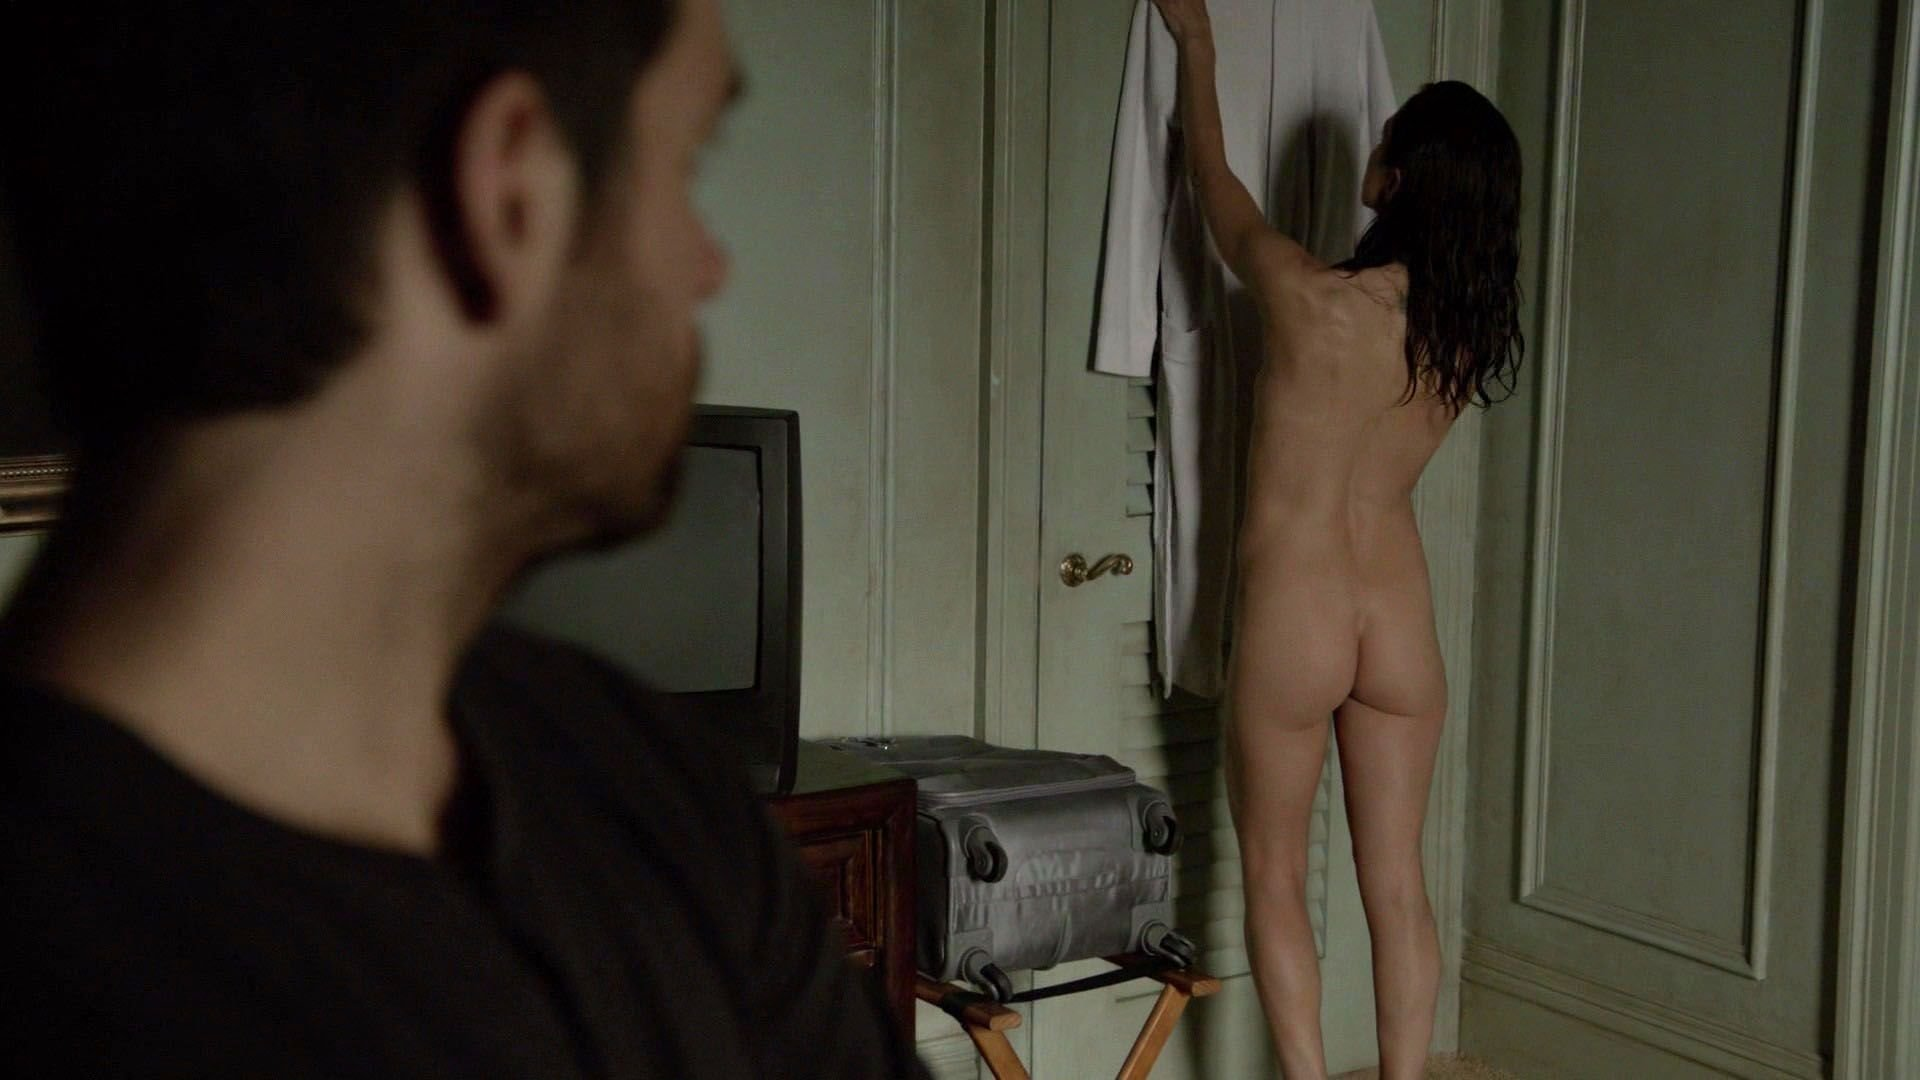 image Eliza dushku nude in the alphabet killer scandalplanetcom